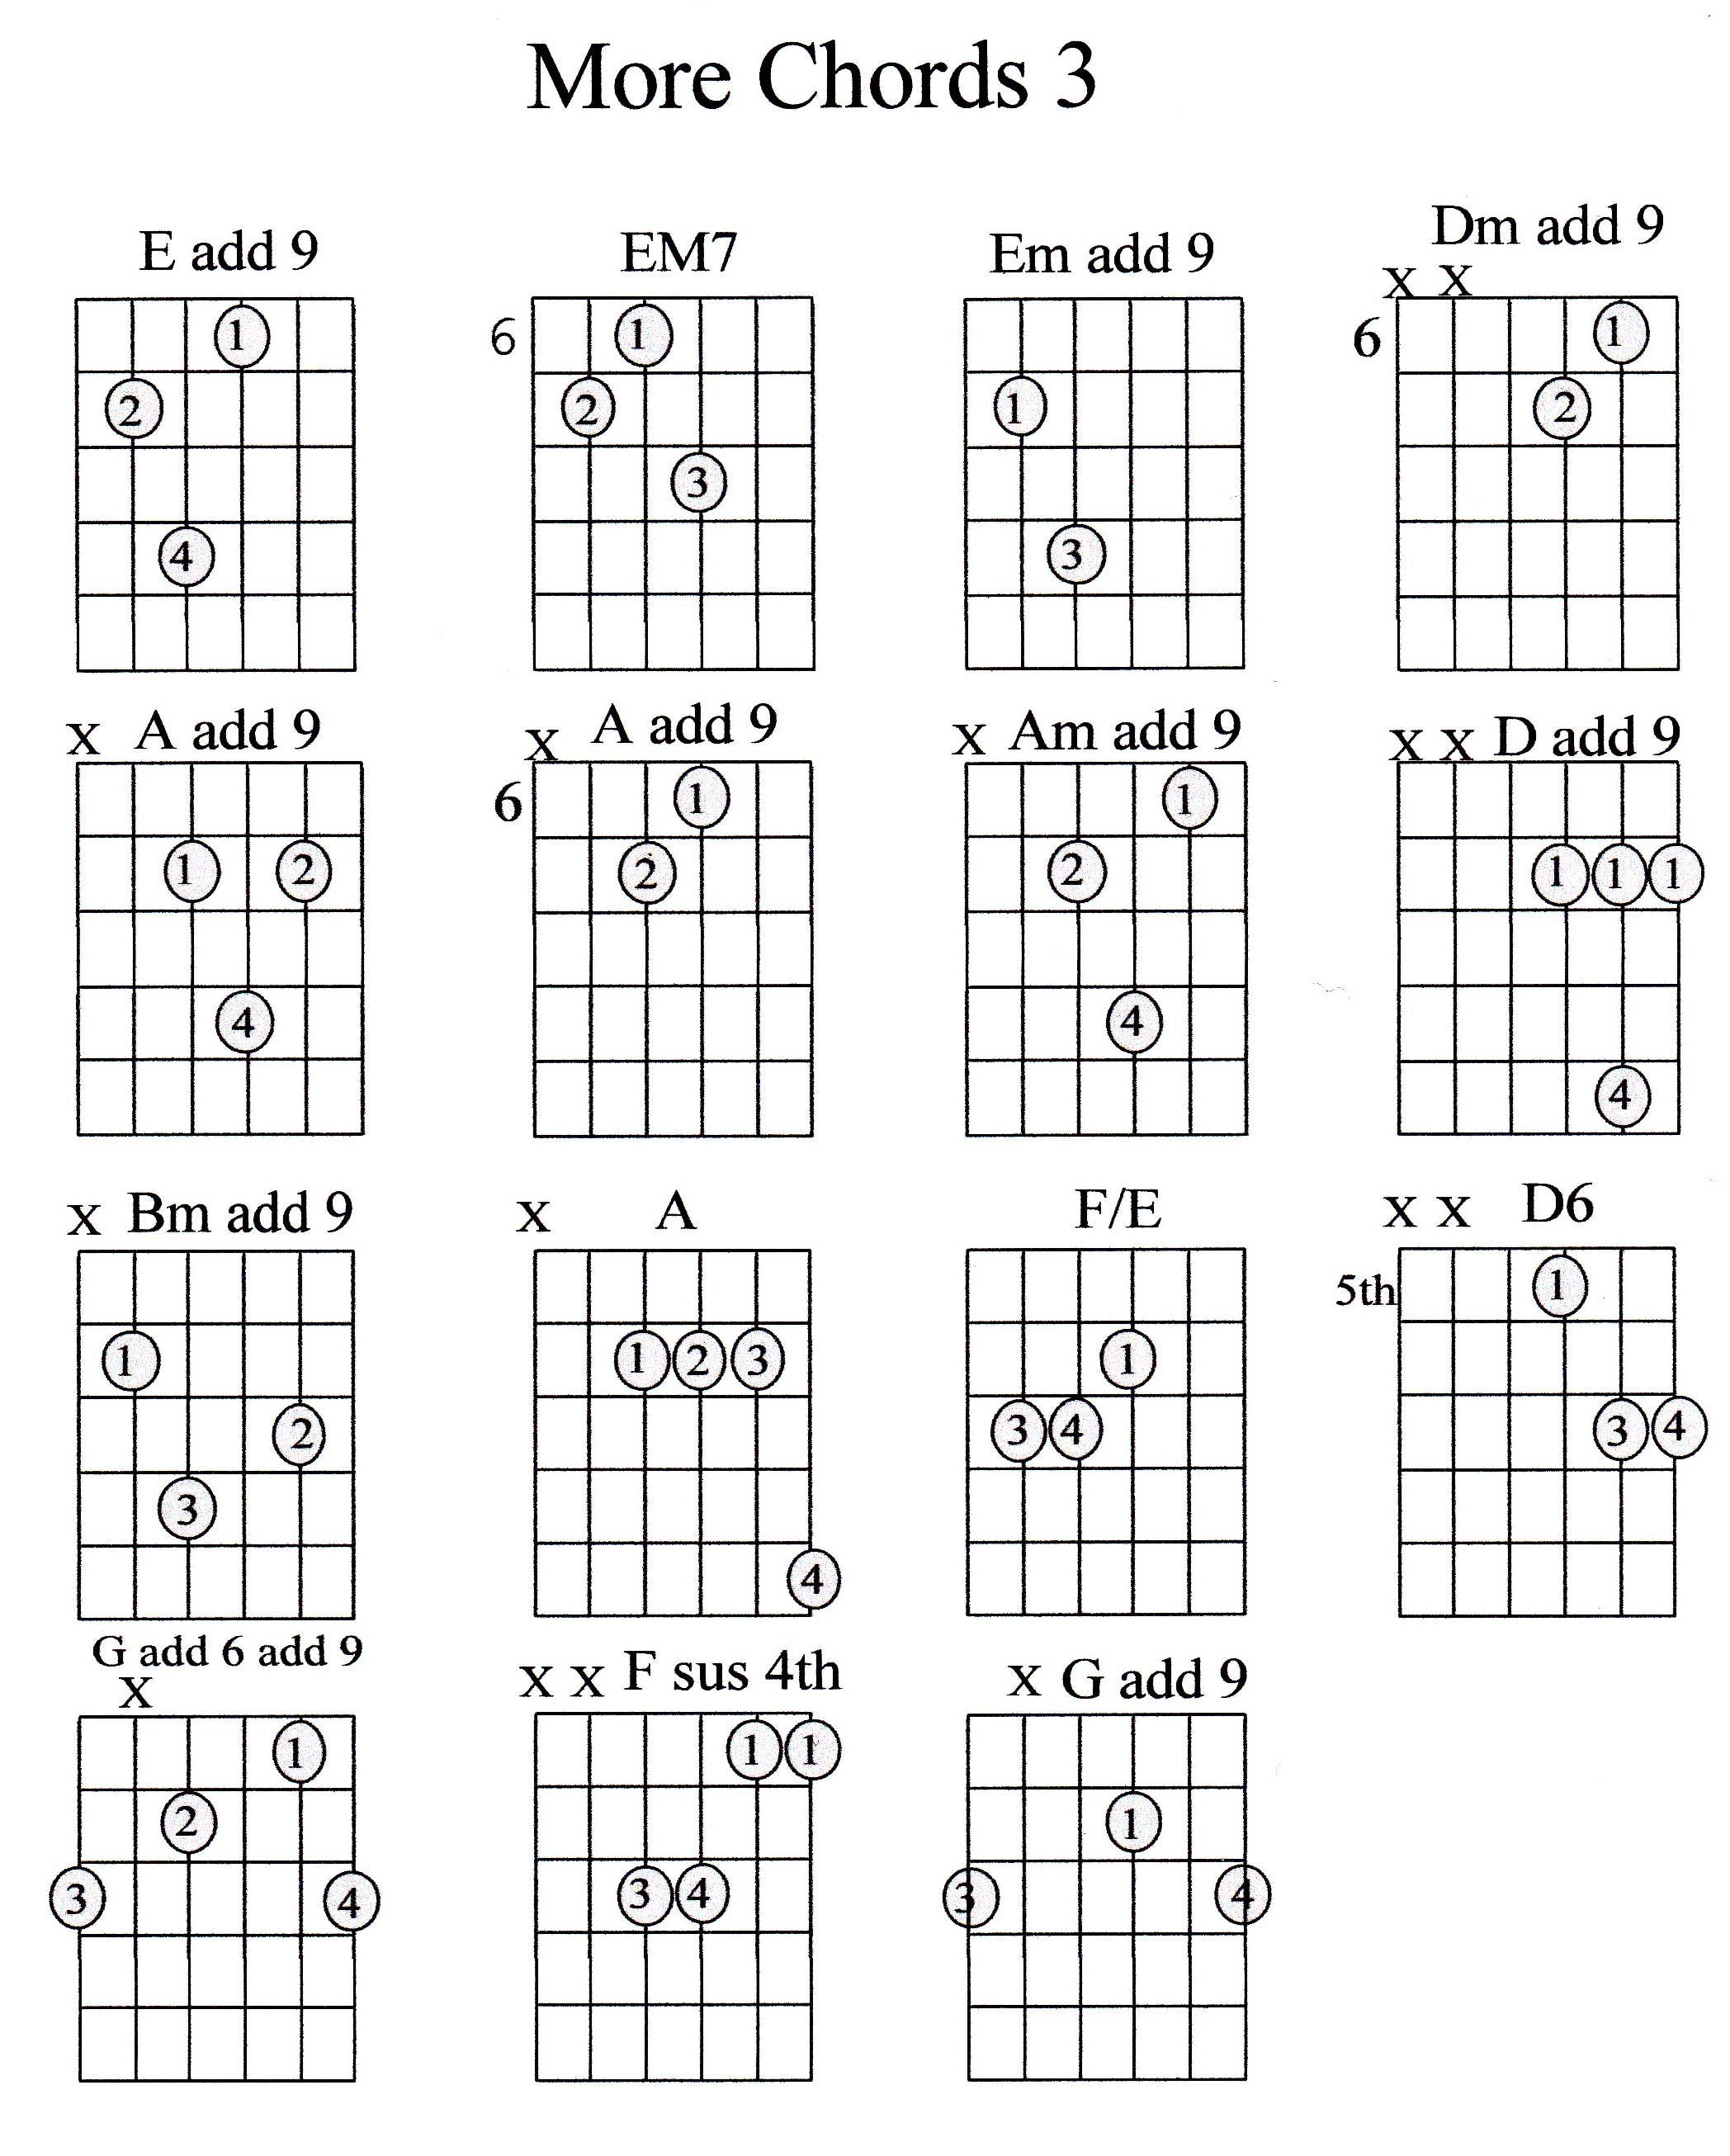 Em9 chord images example any chord ideas d add 9 guitar chord choice image guitar chords examples guitar chord guide advanced marcus curtis hexwebz Choice Image